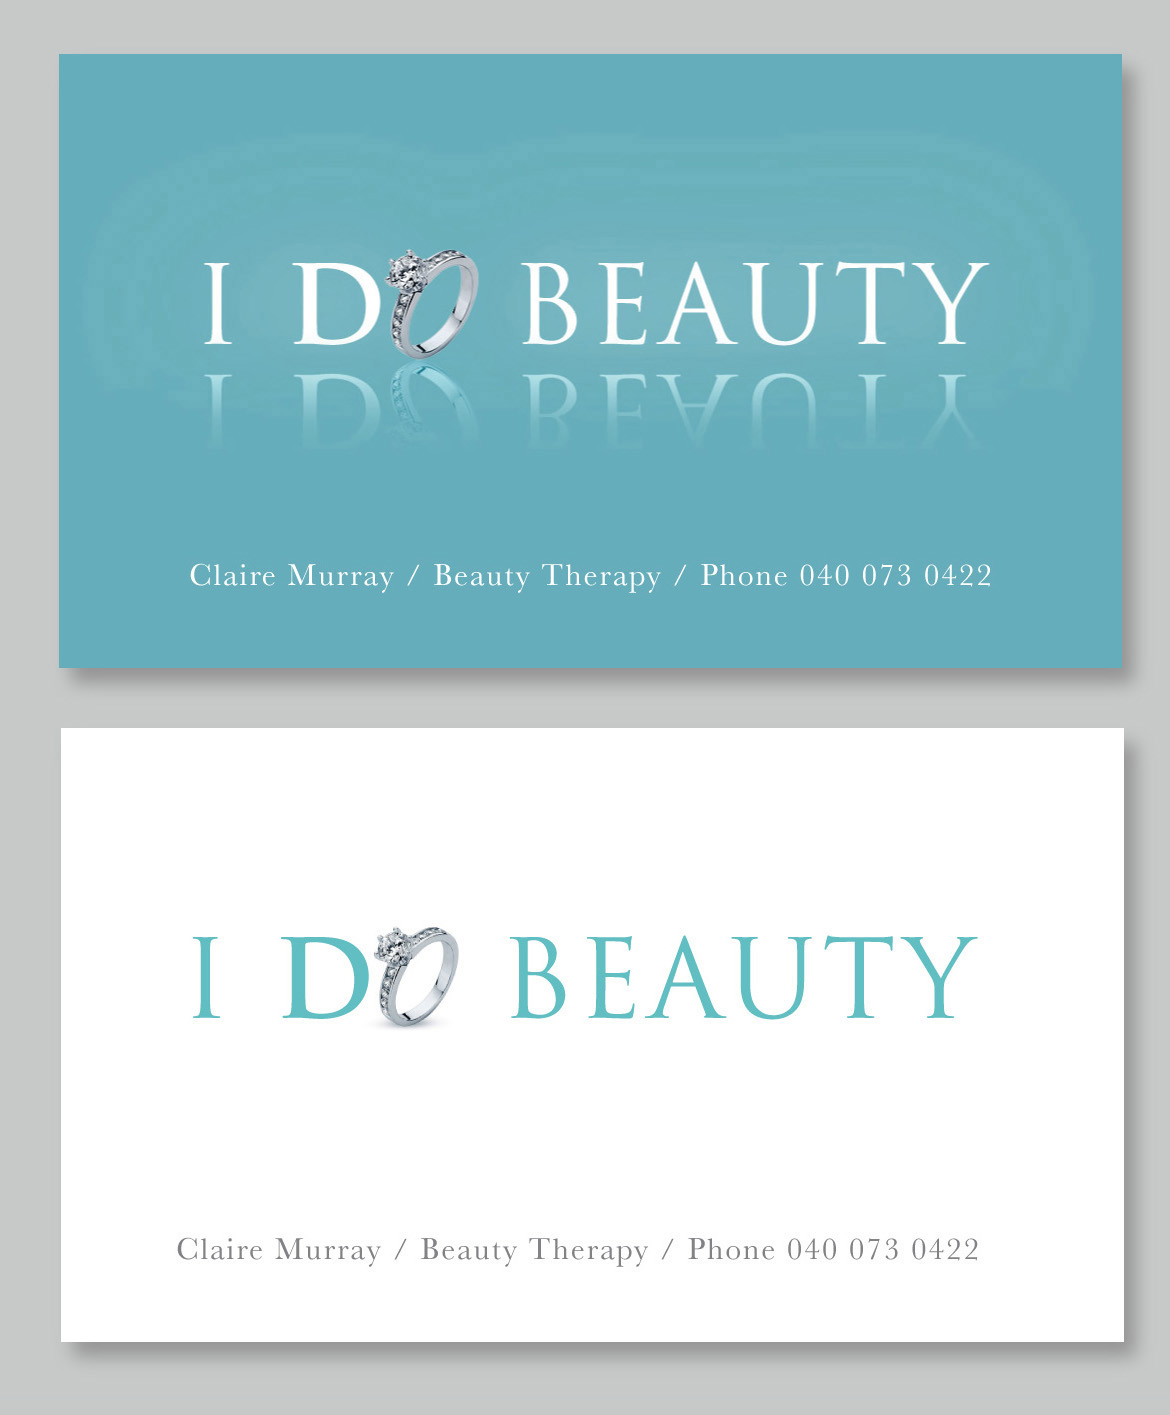 Business Card Design By Jacob Erasmus For Beauty Therapy 1146510